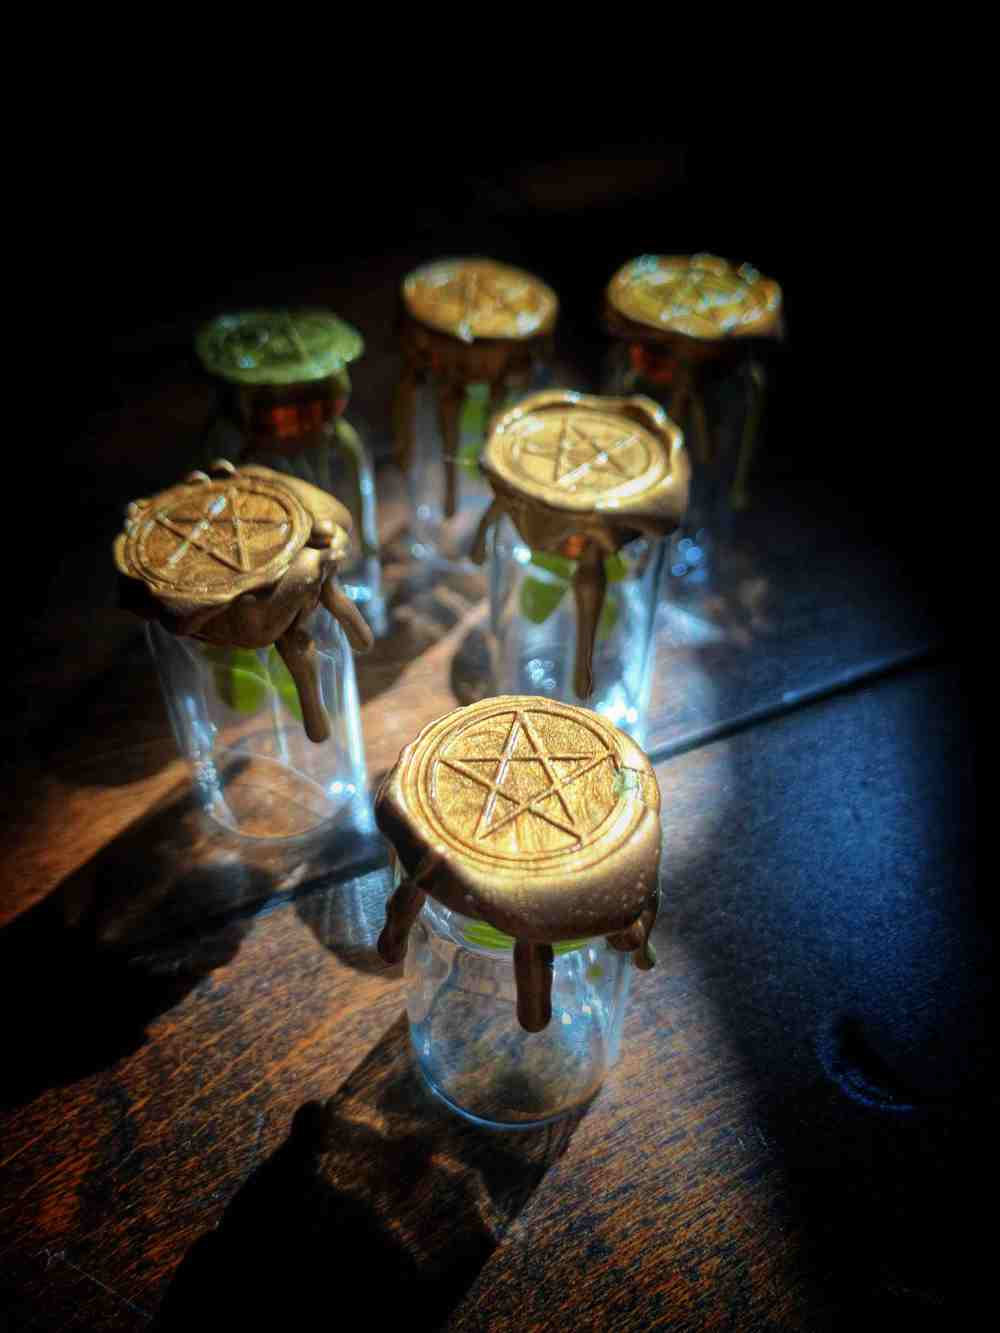 Four Leaf Clover Reliquary Witch Bottle